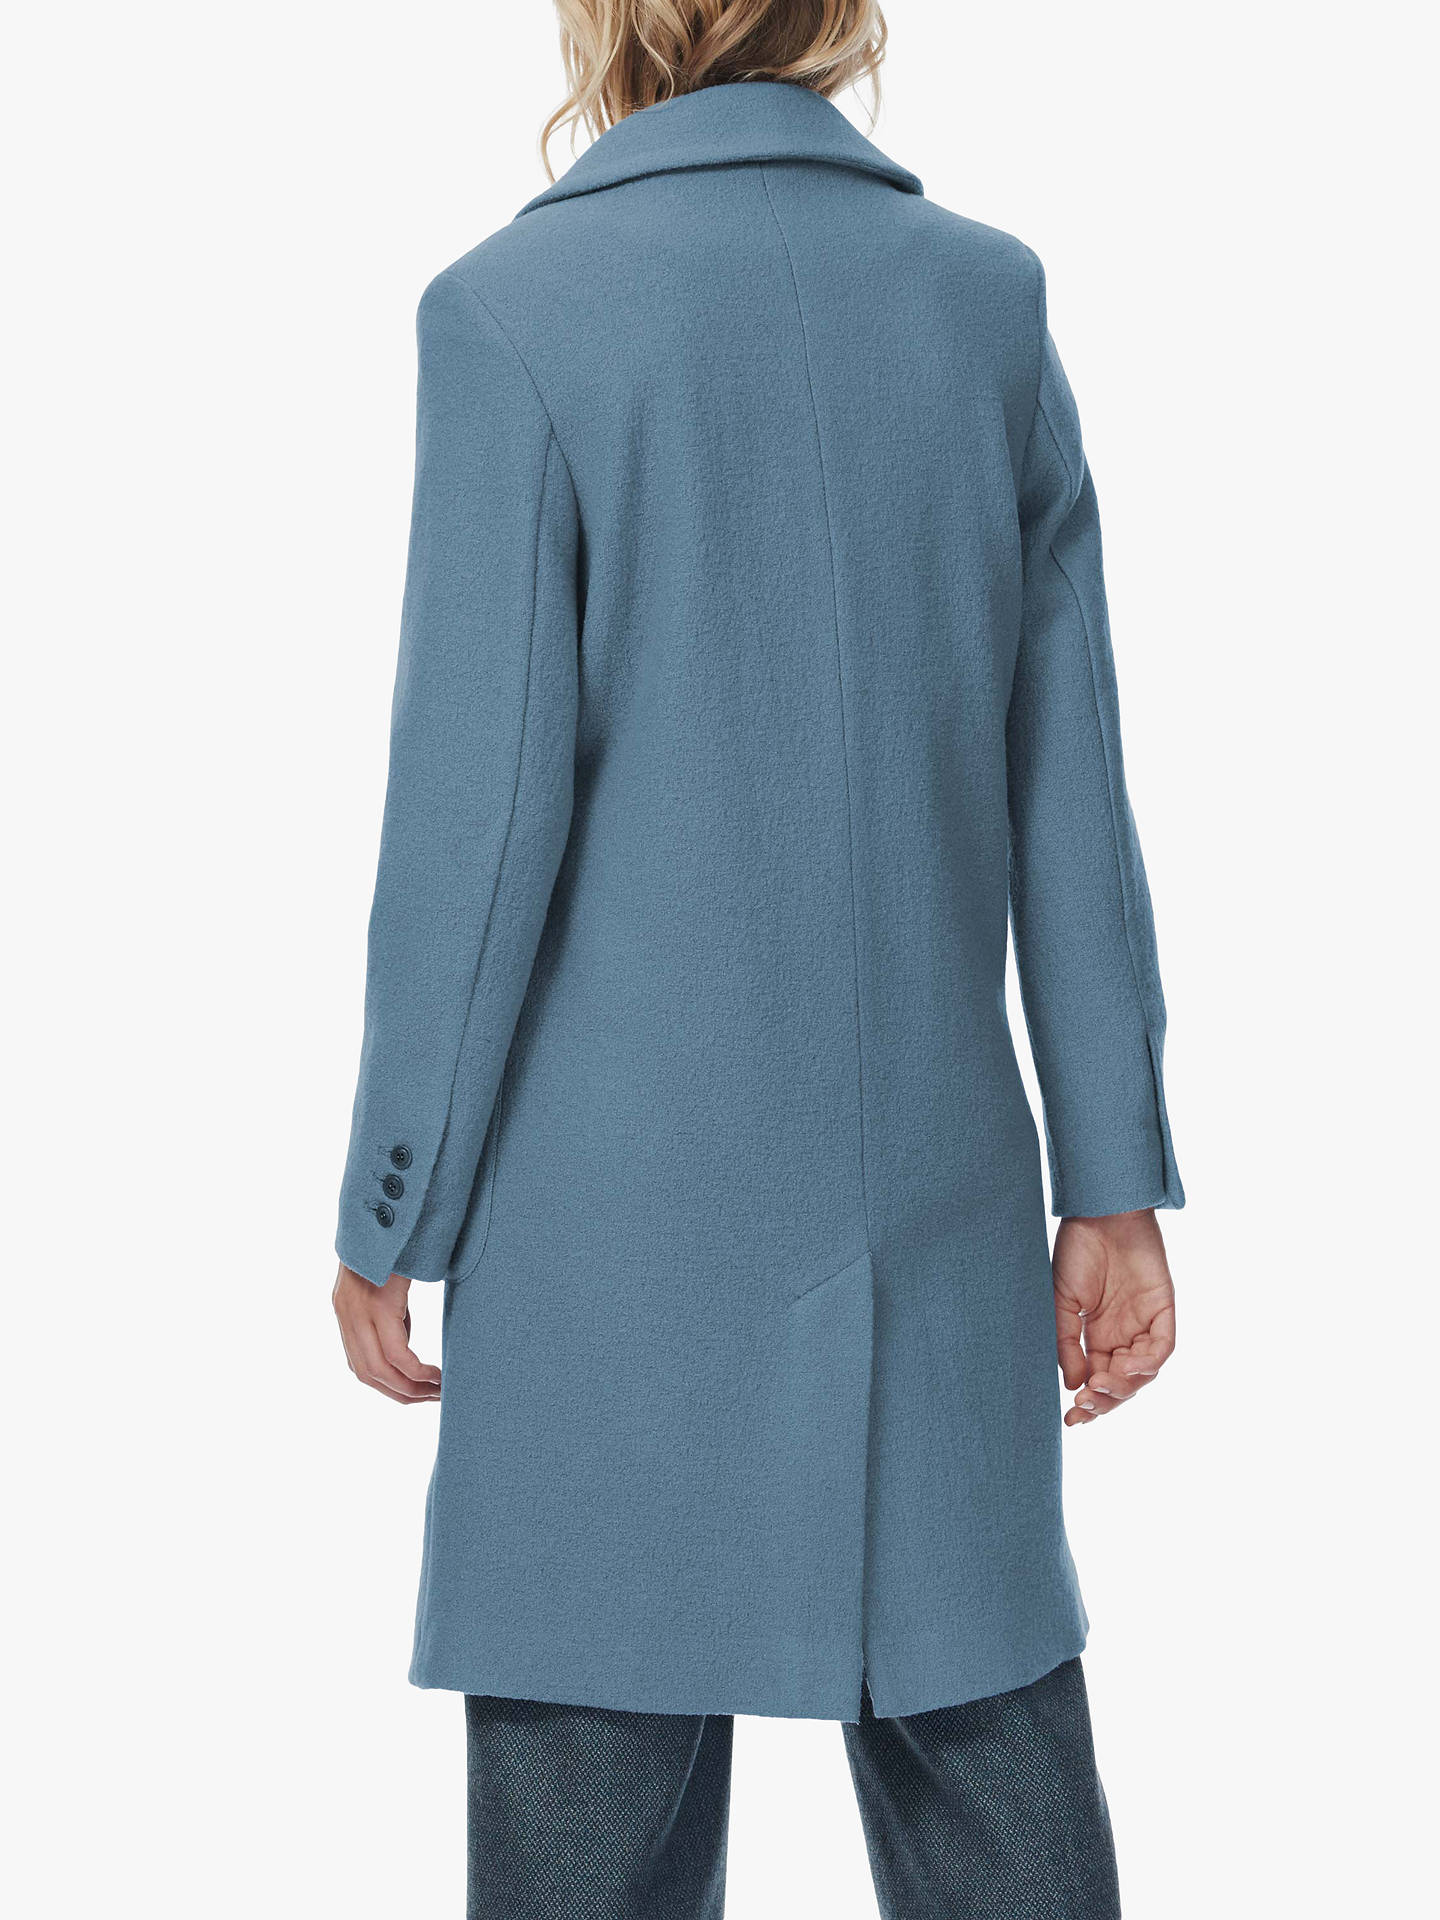 BuyBrora Boiled Wool Coat, Iris, 8 Online at johnlewis.com